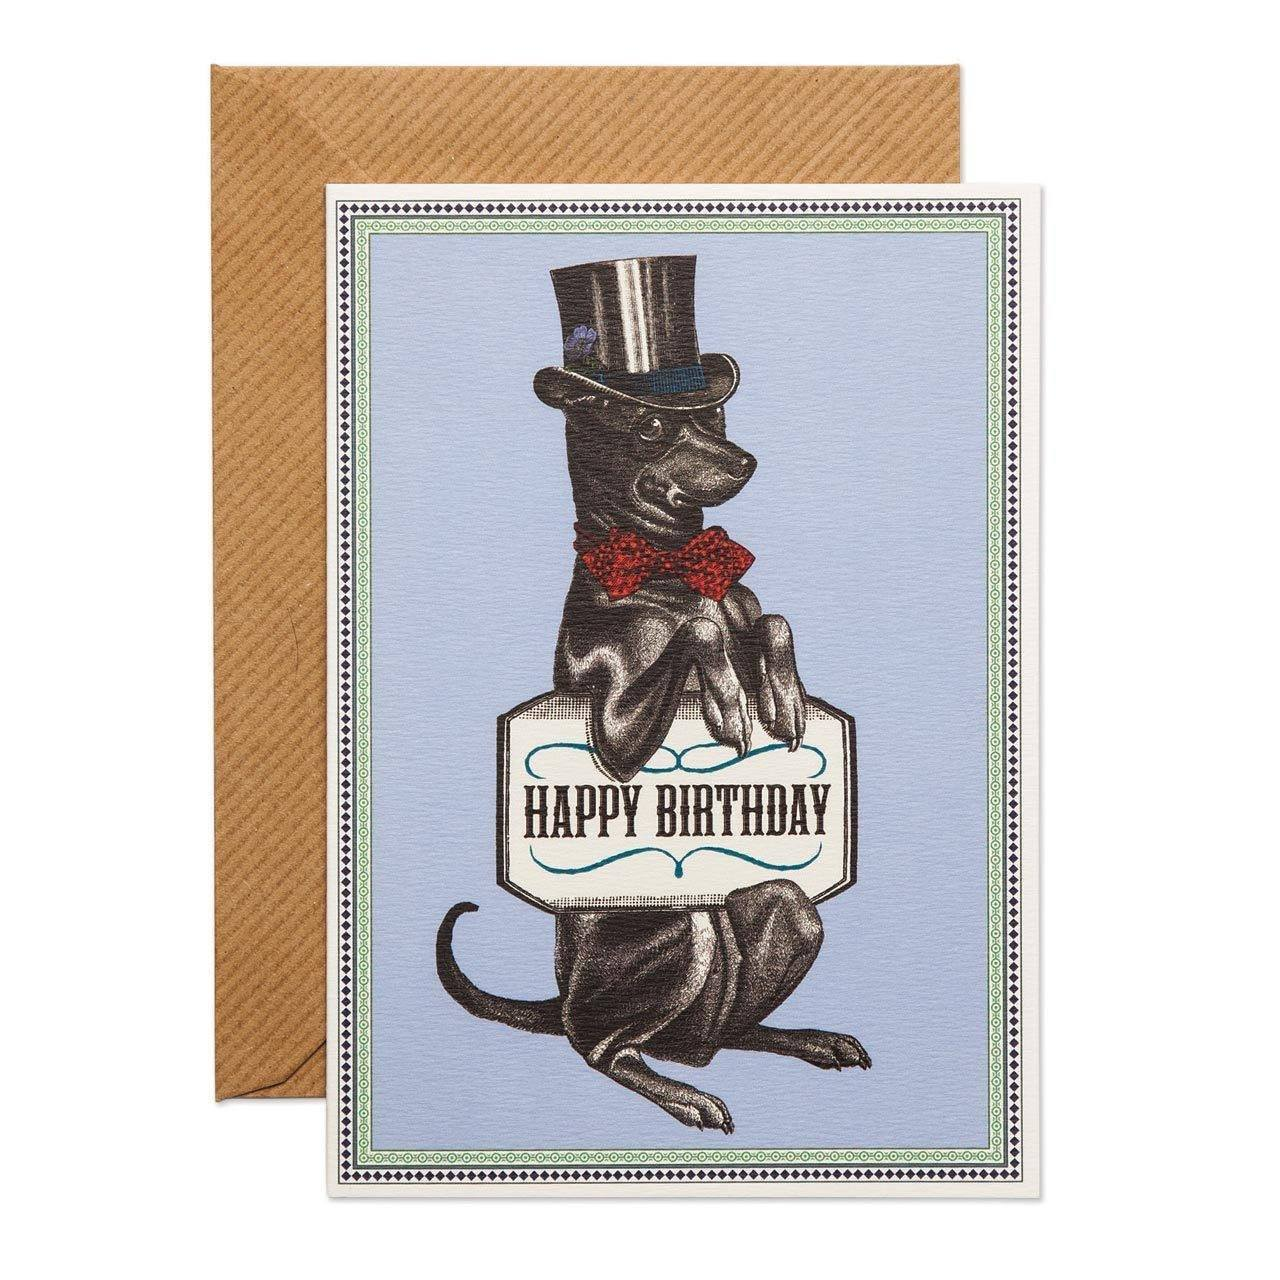 Happy Birthday Hound Greeting Card - Chase and Wonder - Proudly Made in Britain